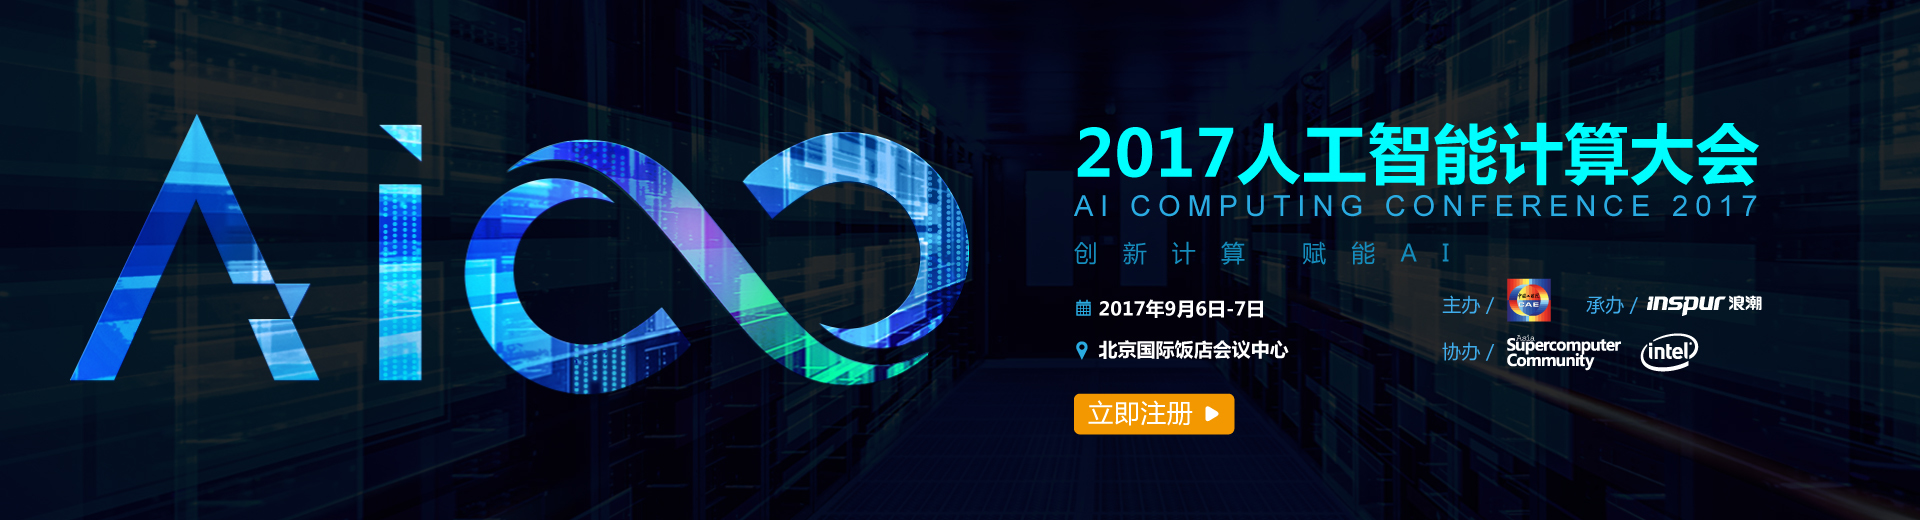 2017 人工智能计算大会 AI Computing Conference(AICC)